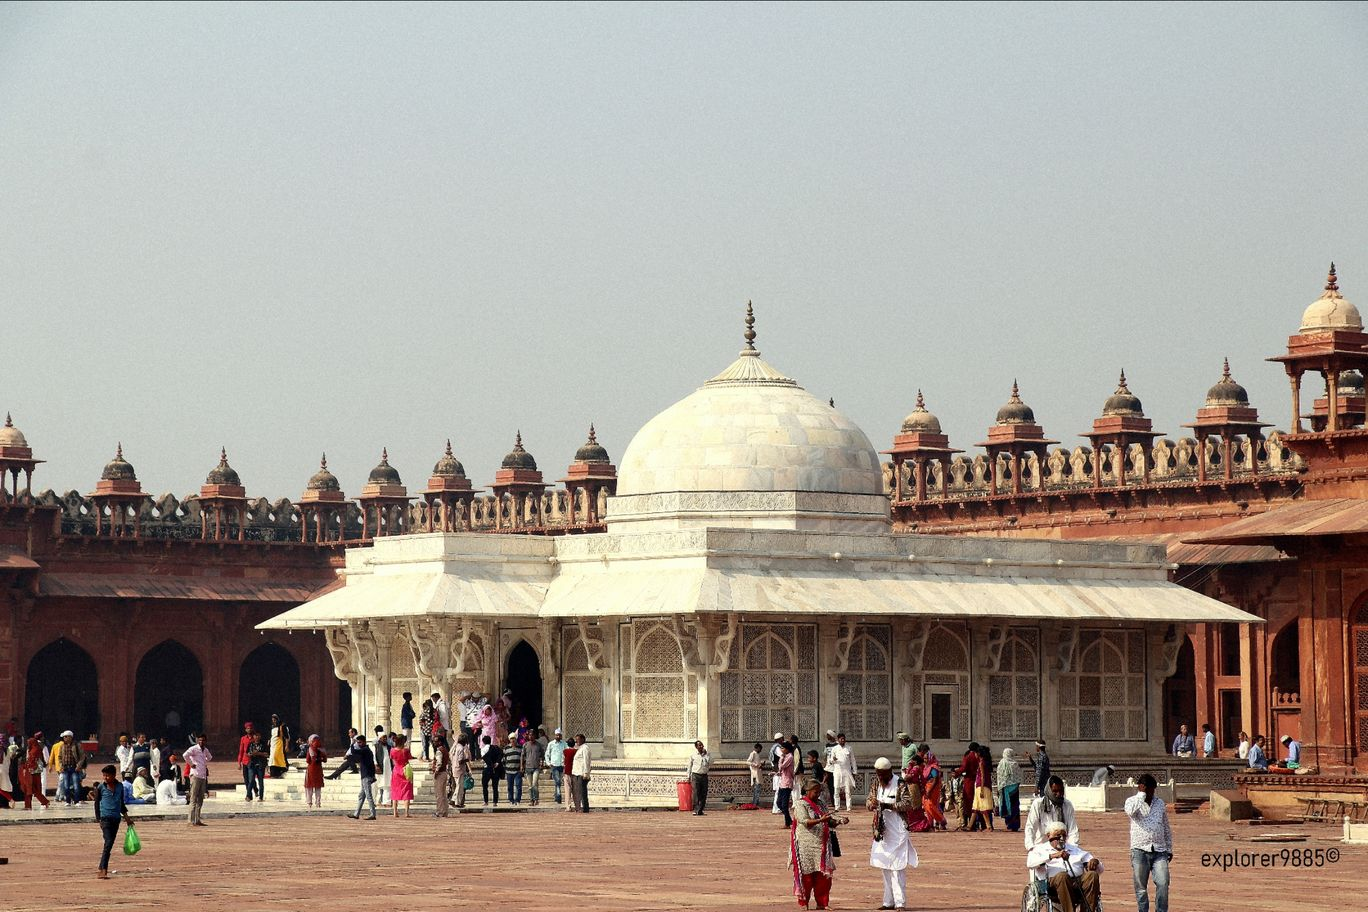 Photo of Fatehpur Sikri By explorer 9885